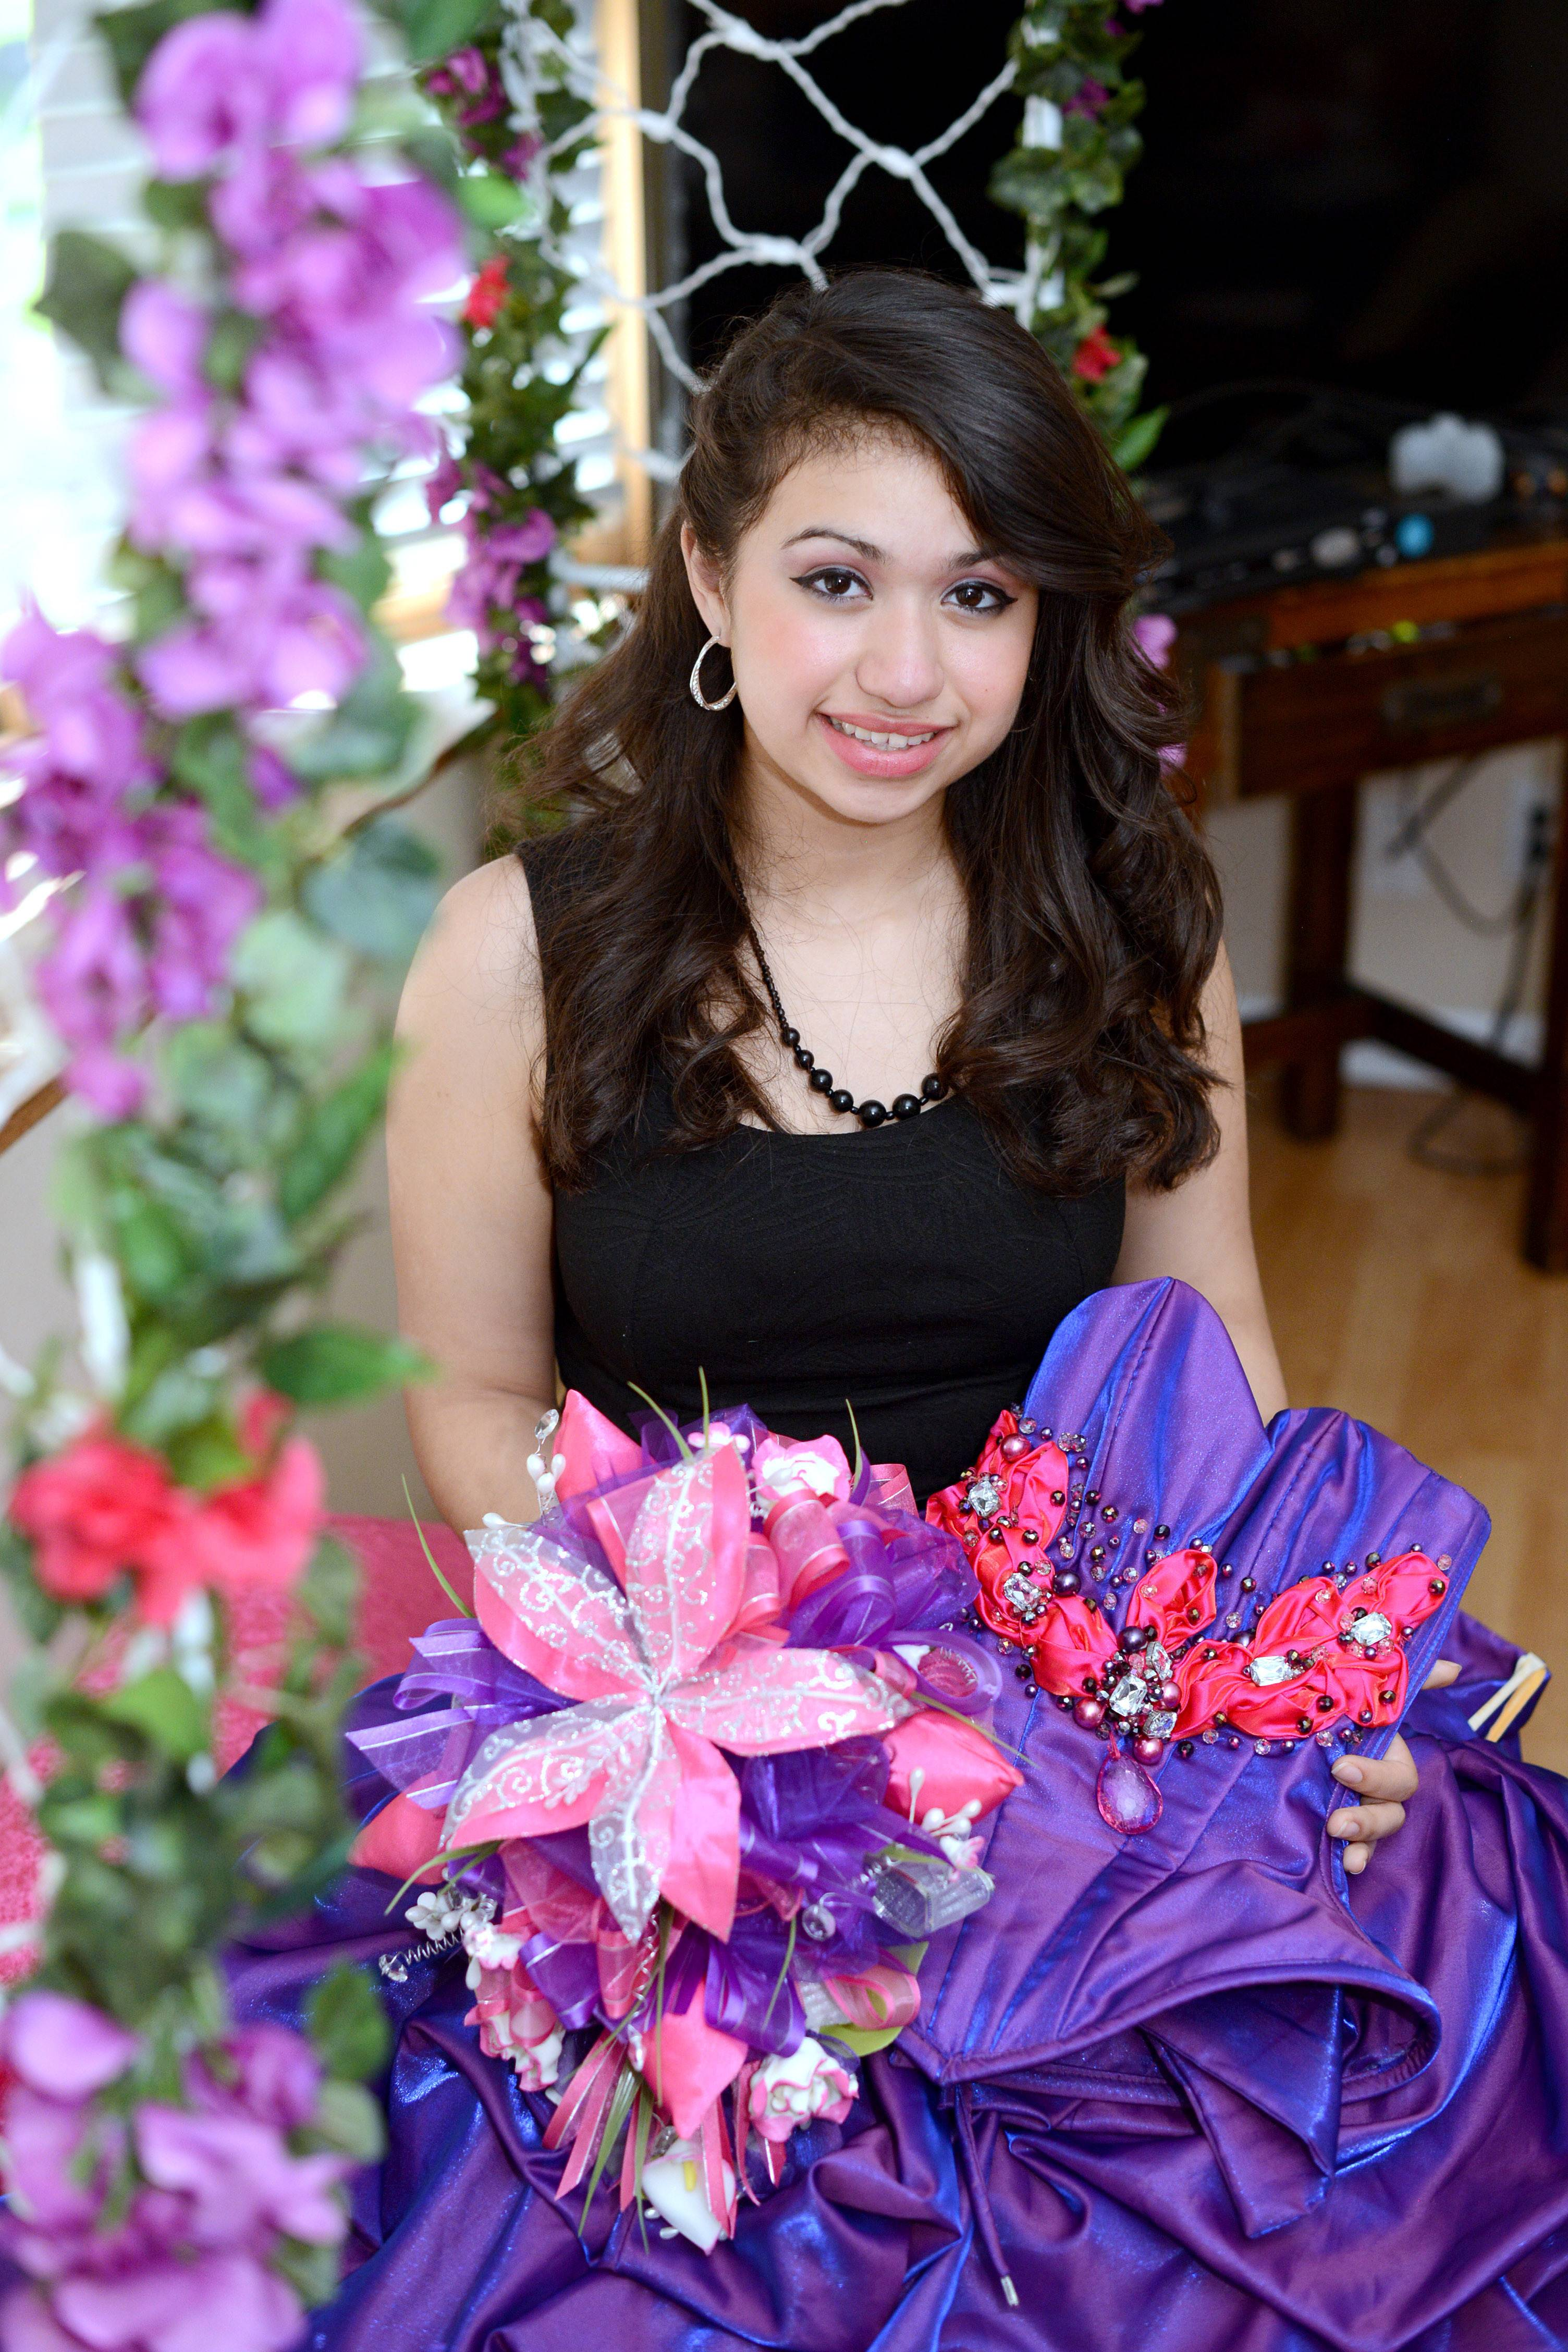 Bianca Huerta, 15, in the quinceañera dress her mother, Brandy, won for her through a Facebook contest.